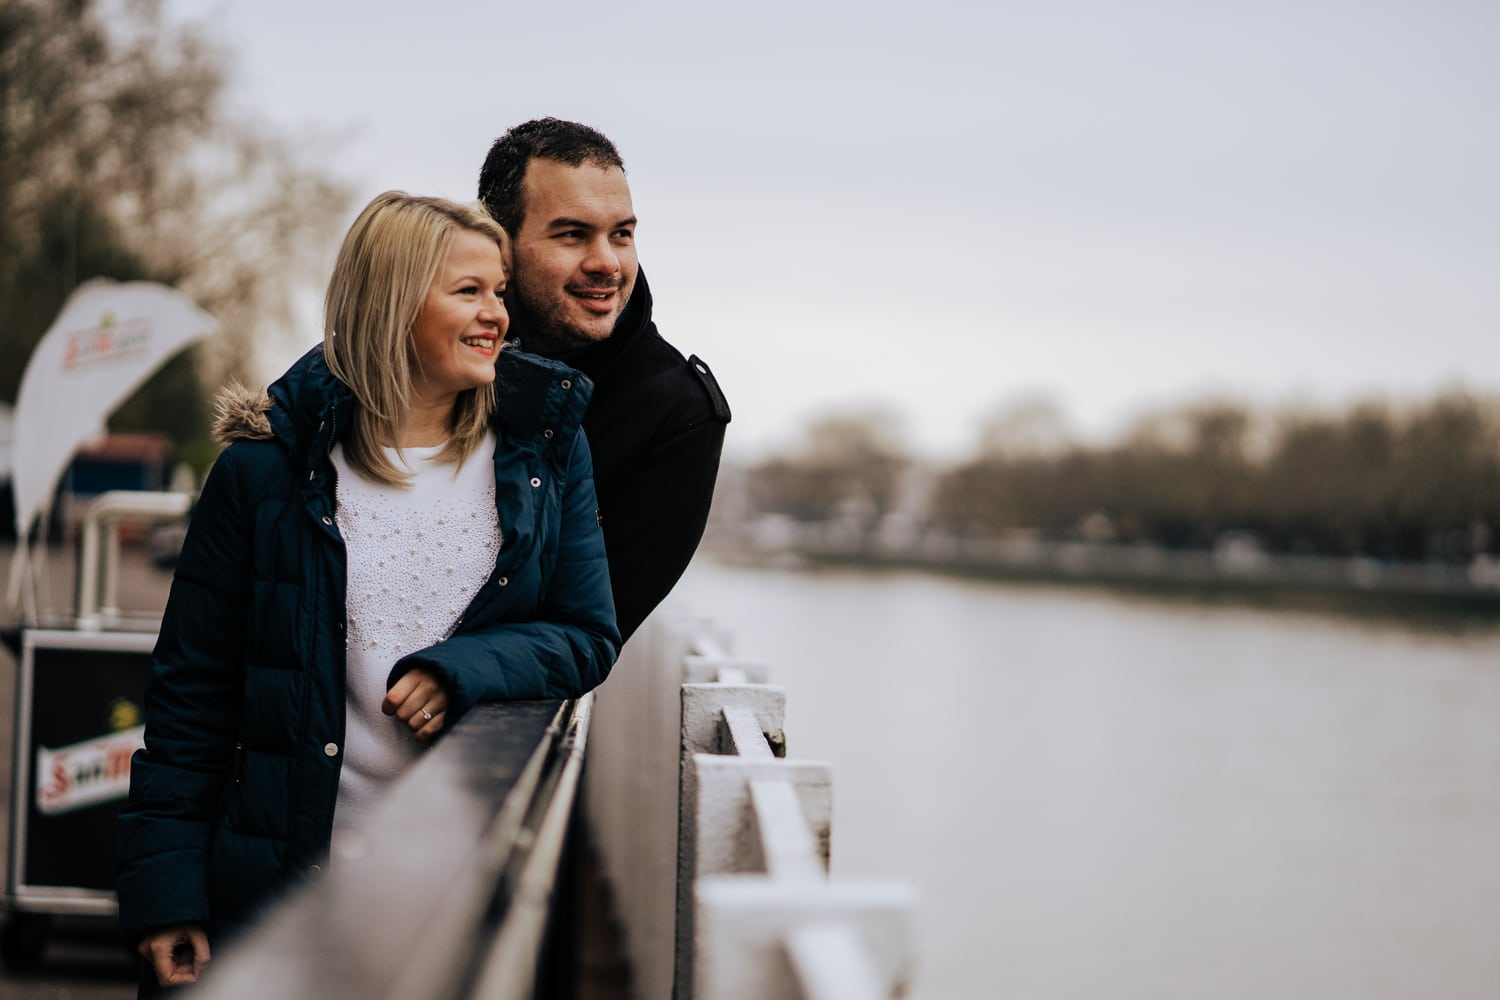 Loving pre wed couple pictured overlooking river taken during their pre wedding engagement shoot at Fulham FC